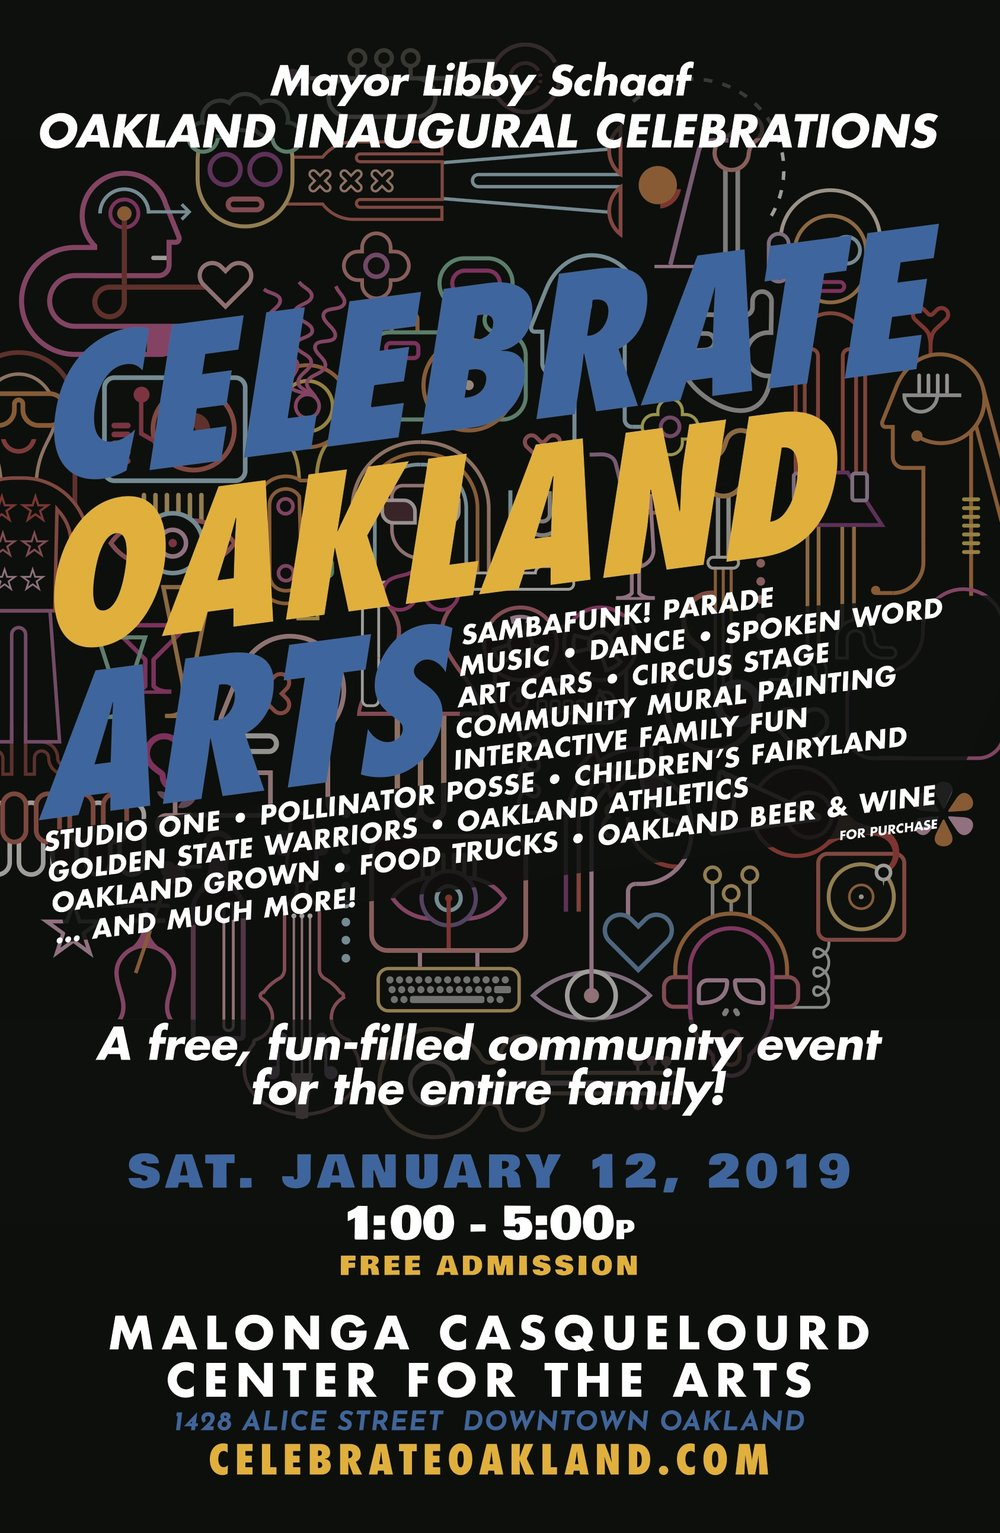 2019_Inauguration January 12 Celebrate Oakland arts - 11 x 17 poster - final to ps print.jpg